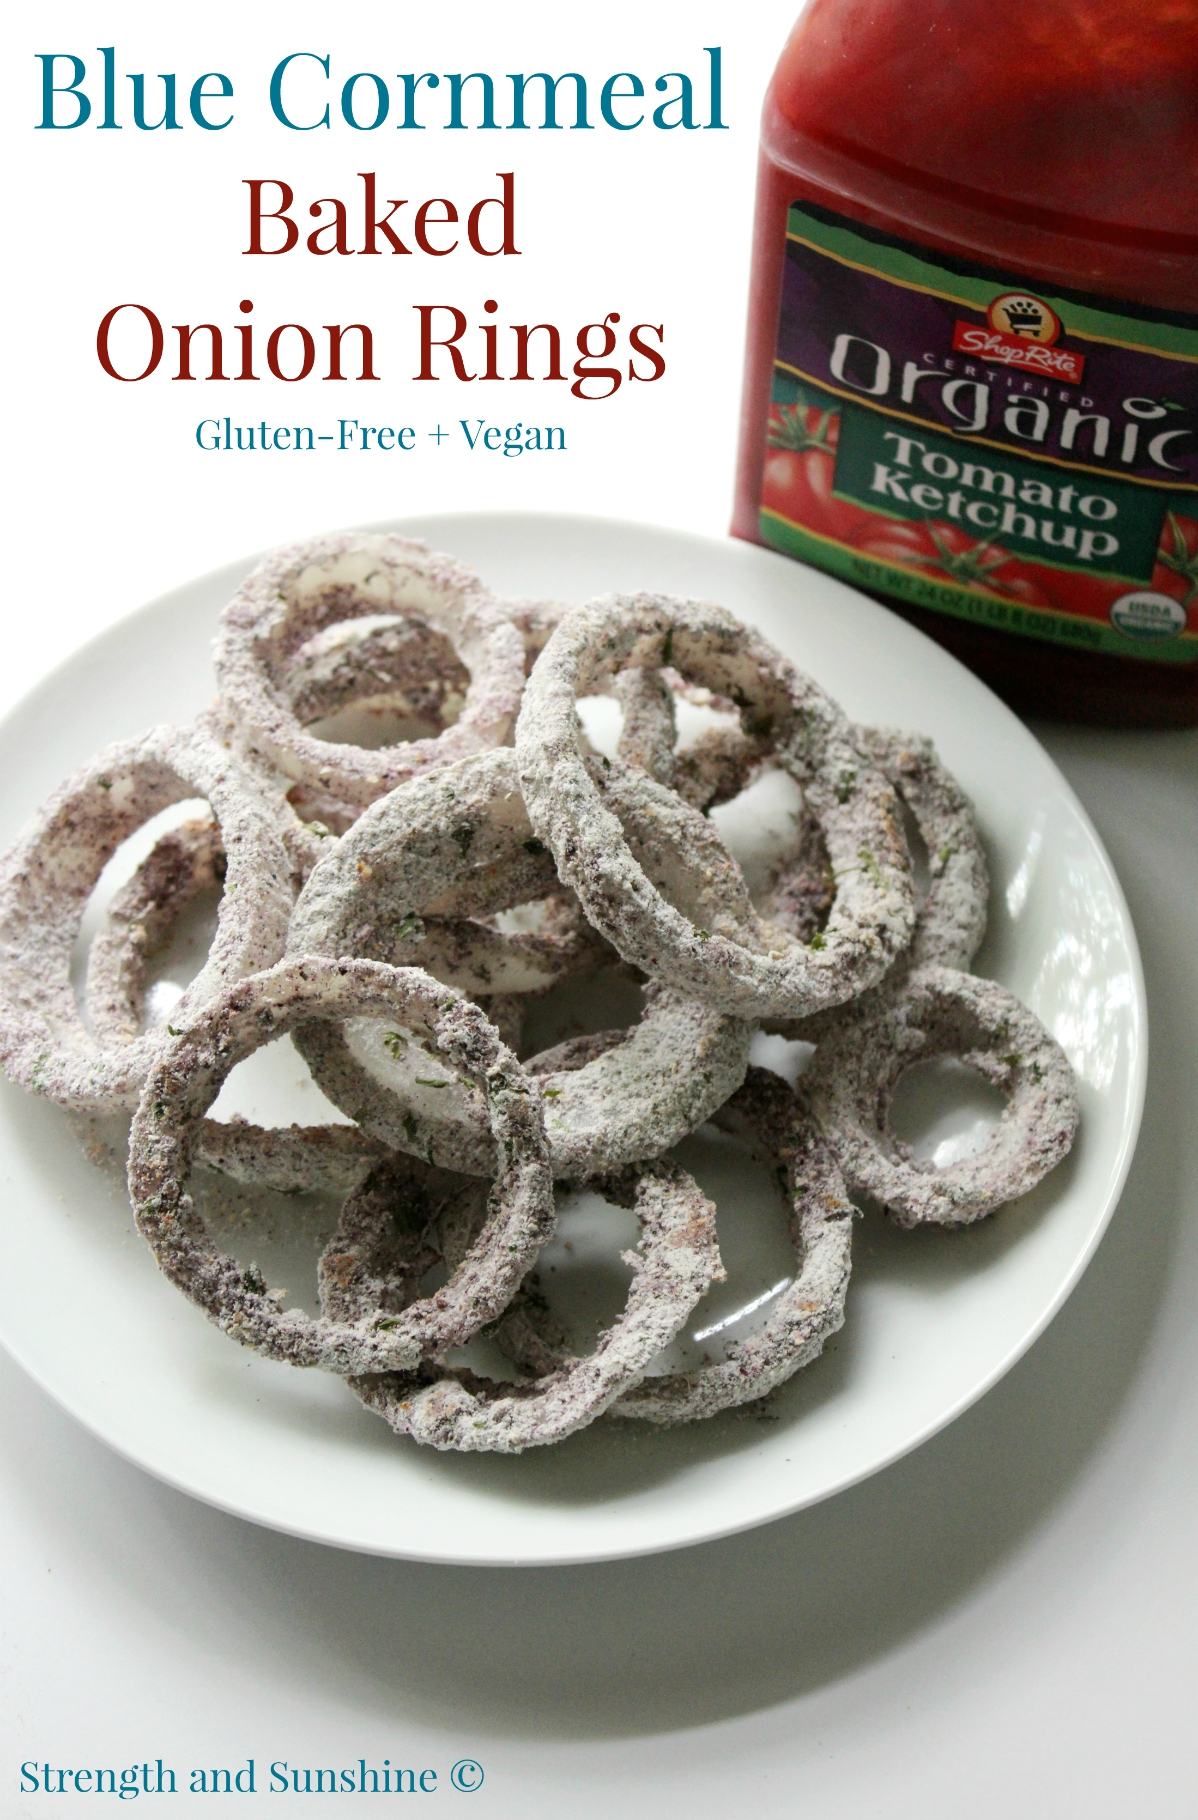 "Blue Cornmeal Baked Onion Rings | Strength and Sunshine @RebeccaGF666 Healthy baked onion rings coated with blue cornmeal. No oil, gluten-free, and vegan, perfect to satisfy that ""fried & fast"" comfort food craving! Snacking, tailgating, or as a dinner side dish!"